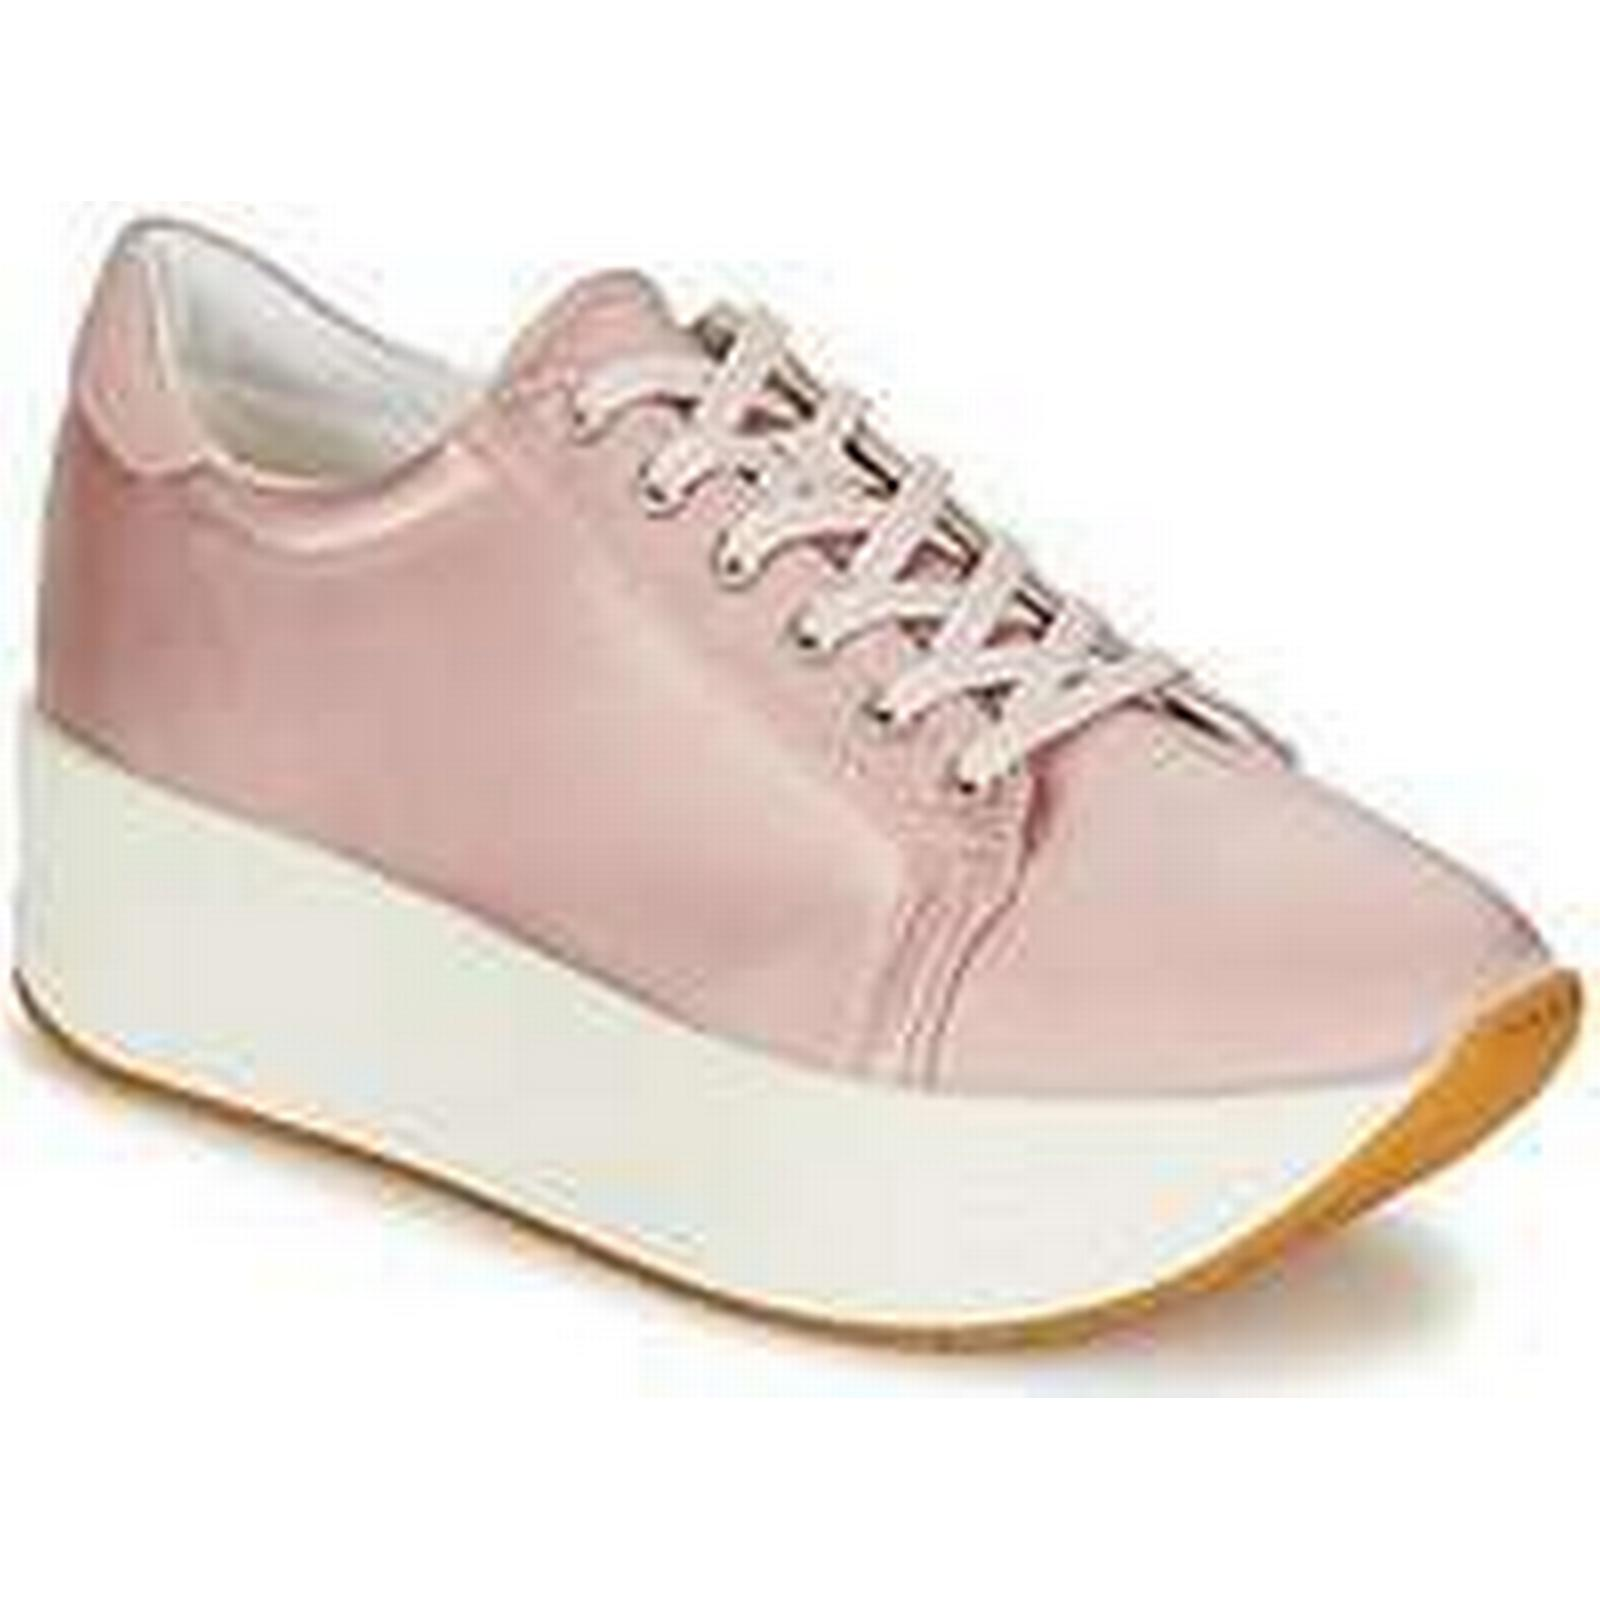 2b6159f6de85 Vagabond trainers uk Spartoo Casey Women s Shoes co xZfEqnSEUB in ...